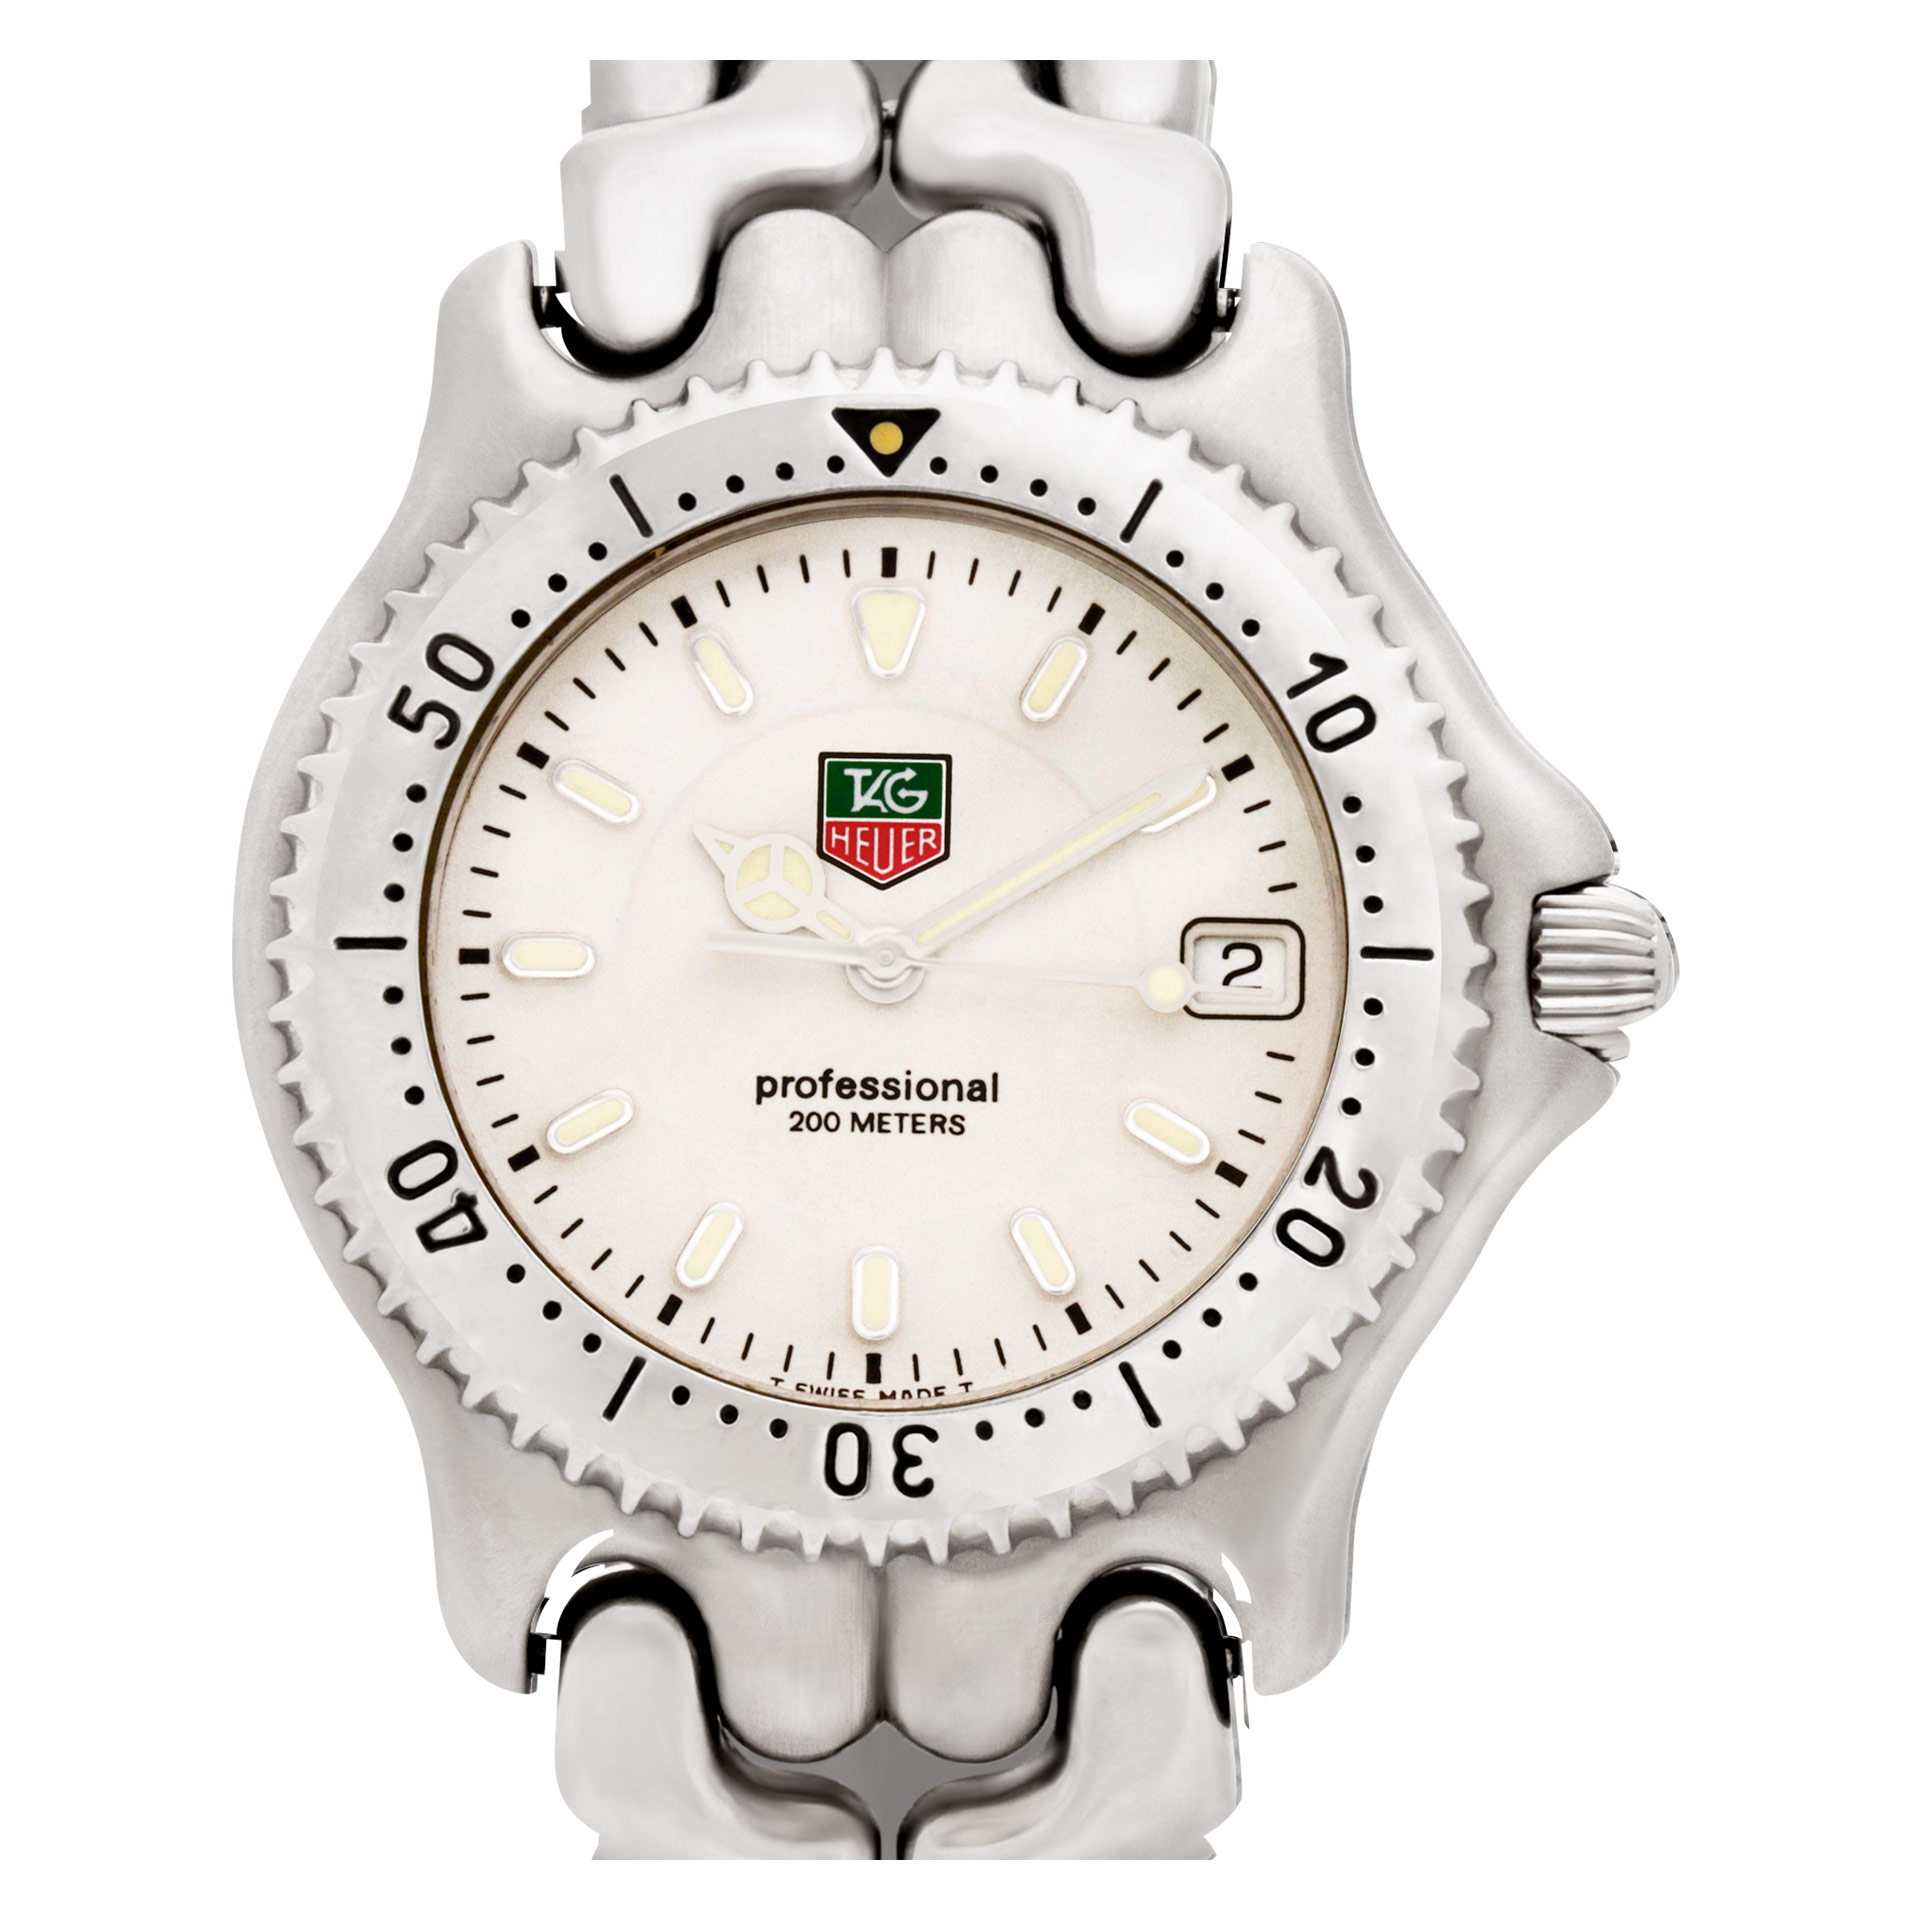 Pre owned Tag Heuer Professional WG1112 KO W